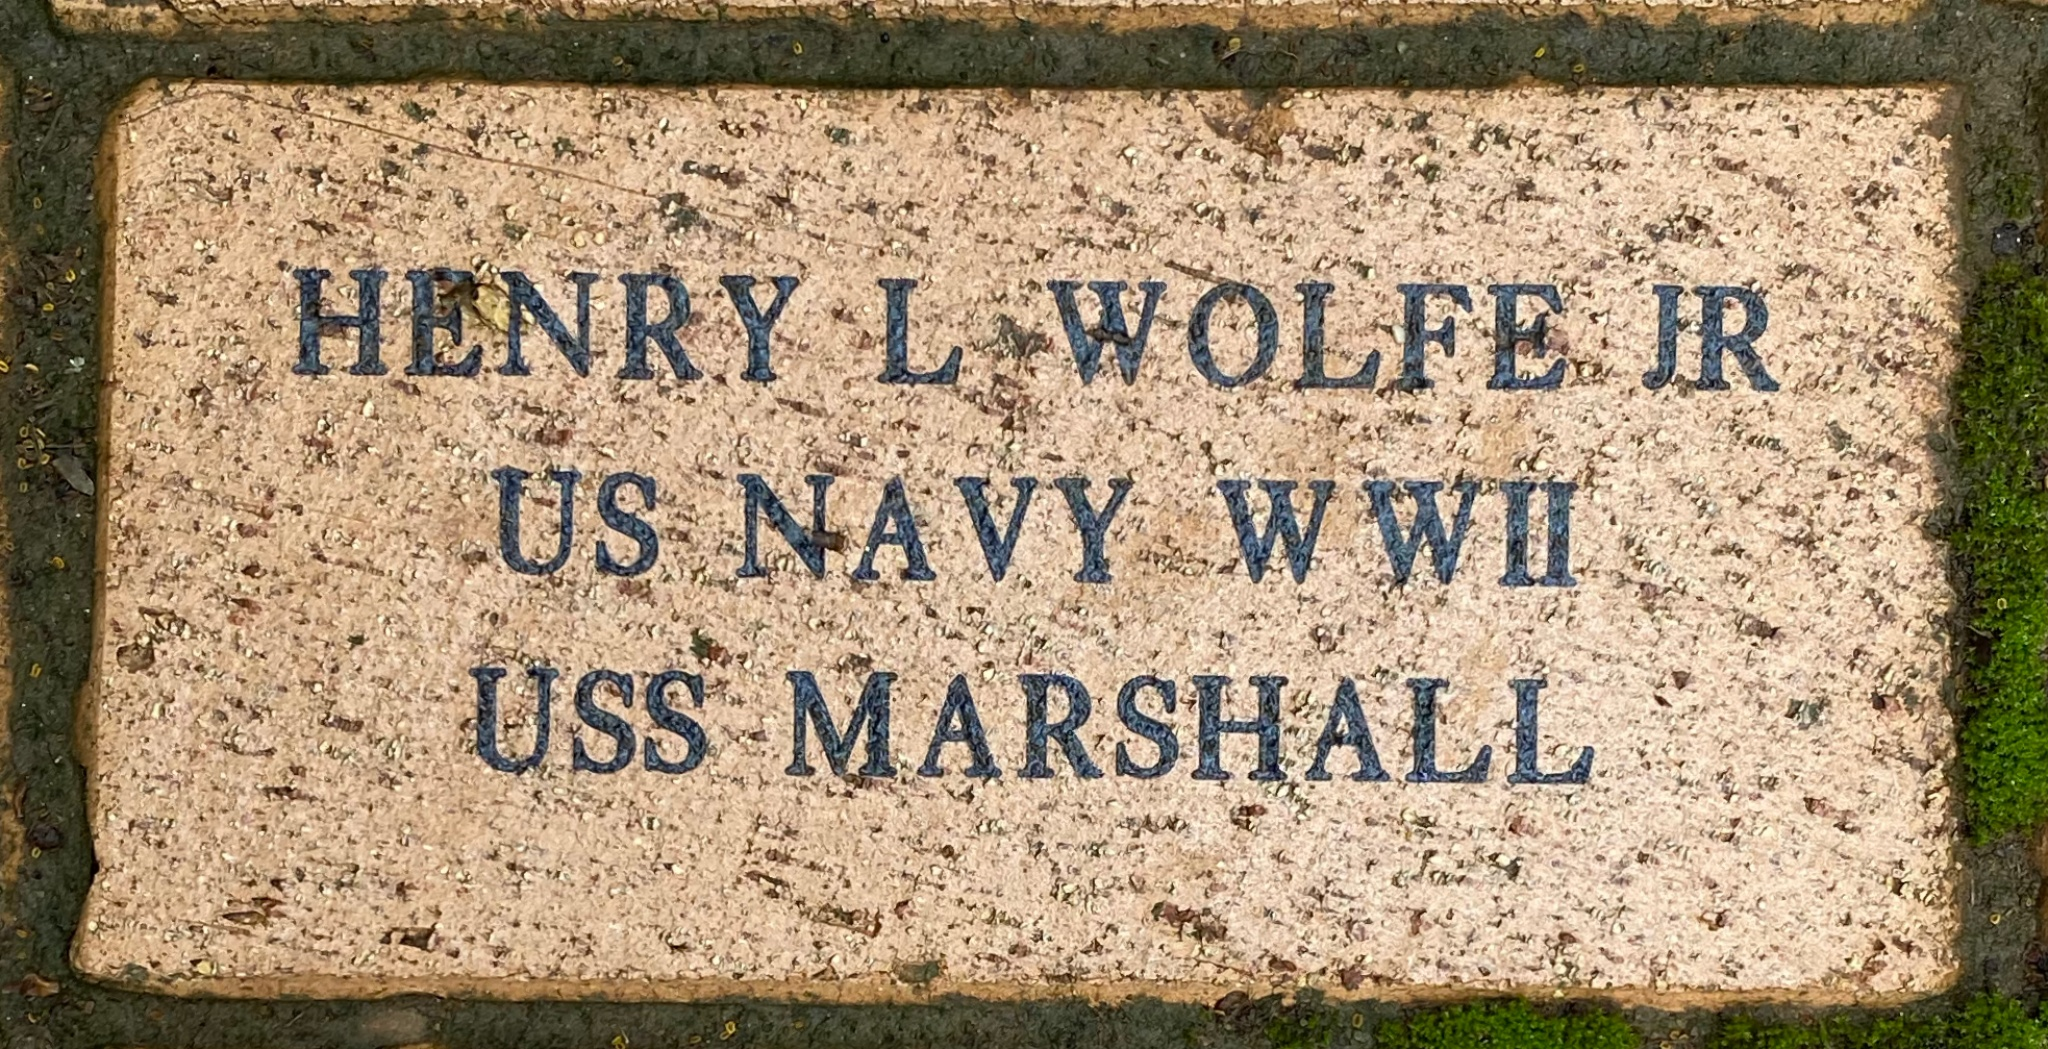 HENRY L WOLFE JR US NAVY WWII USS MARSHALL